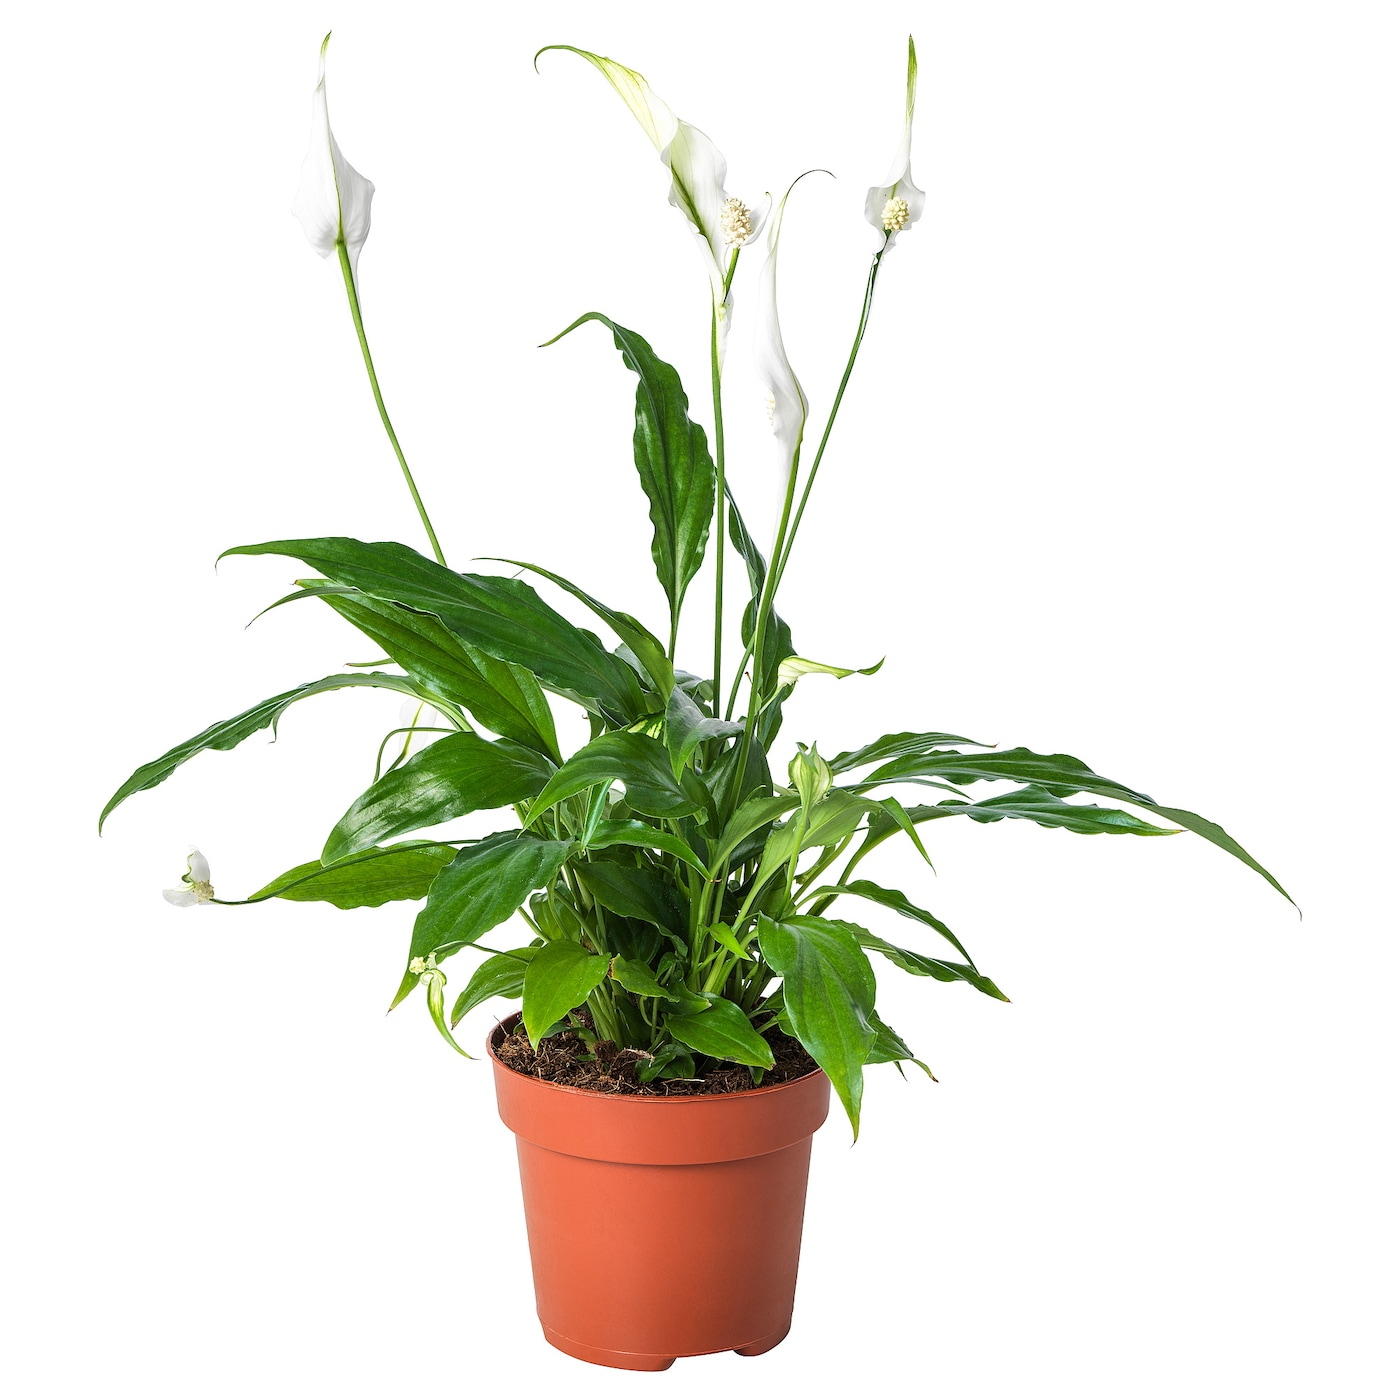 House Plants Outdoor Ikea Ireland Dublin Love Potted Decorative Spathiphyllum Plant